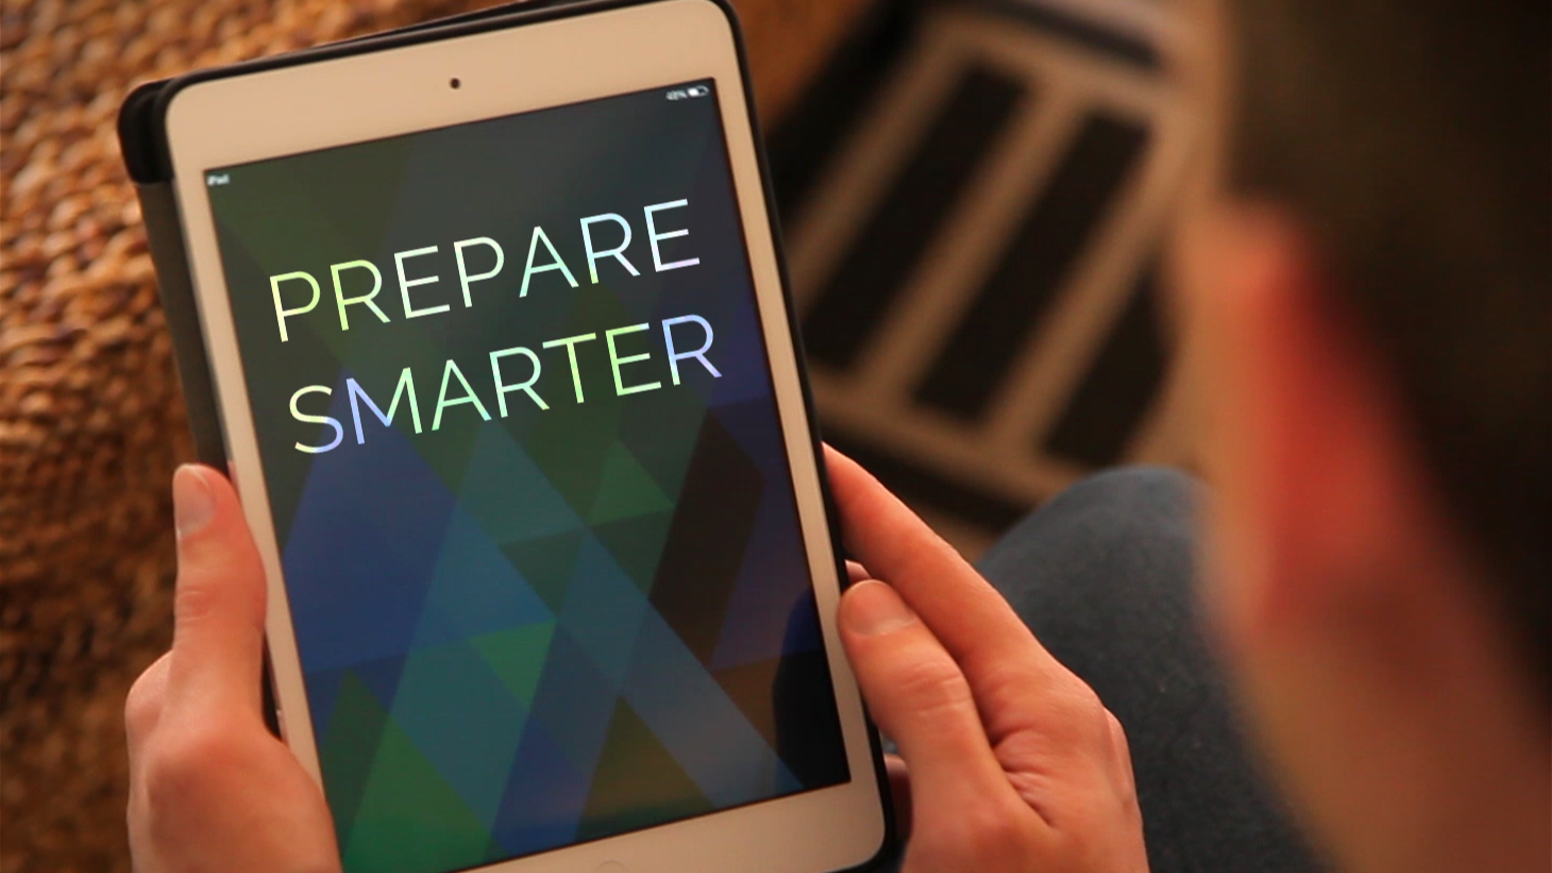 The online class that makes preparedness lovable. Learn to prepare smarter, not harder. For your needs, on your timeline, in your way.